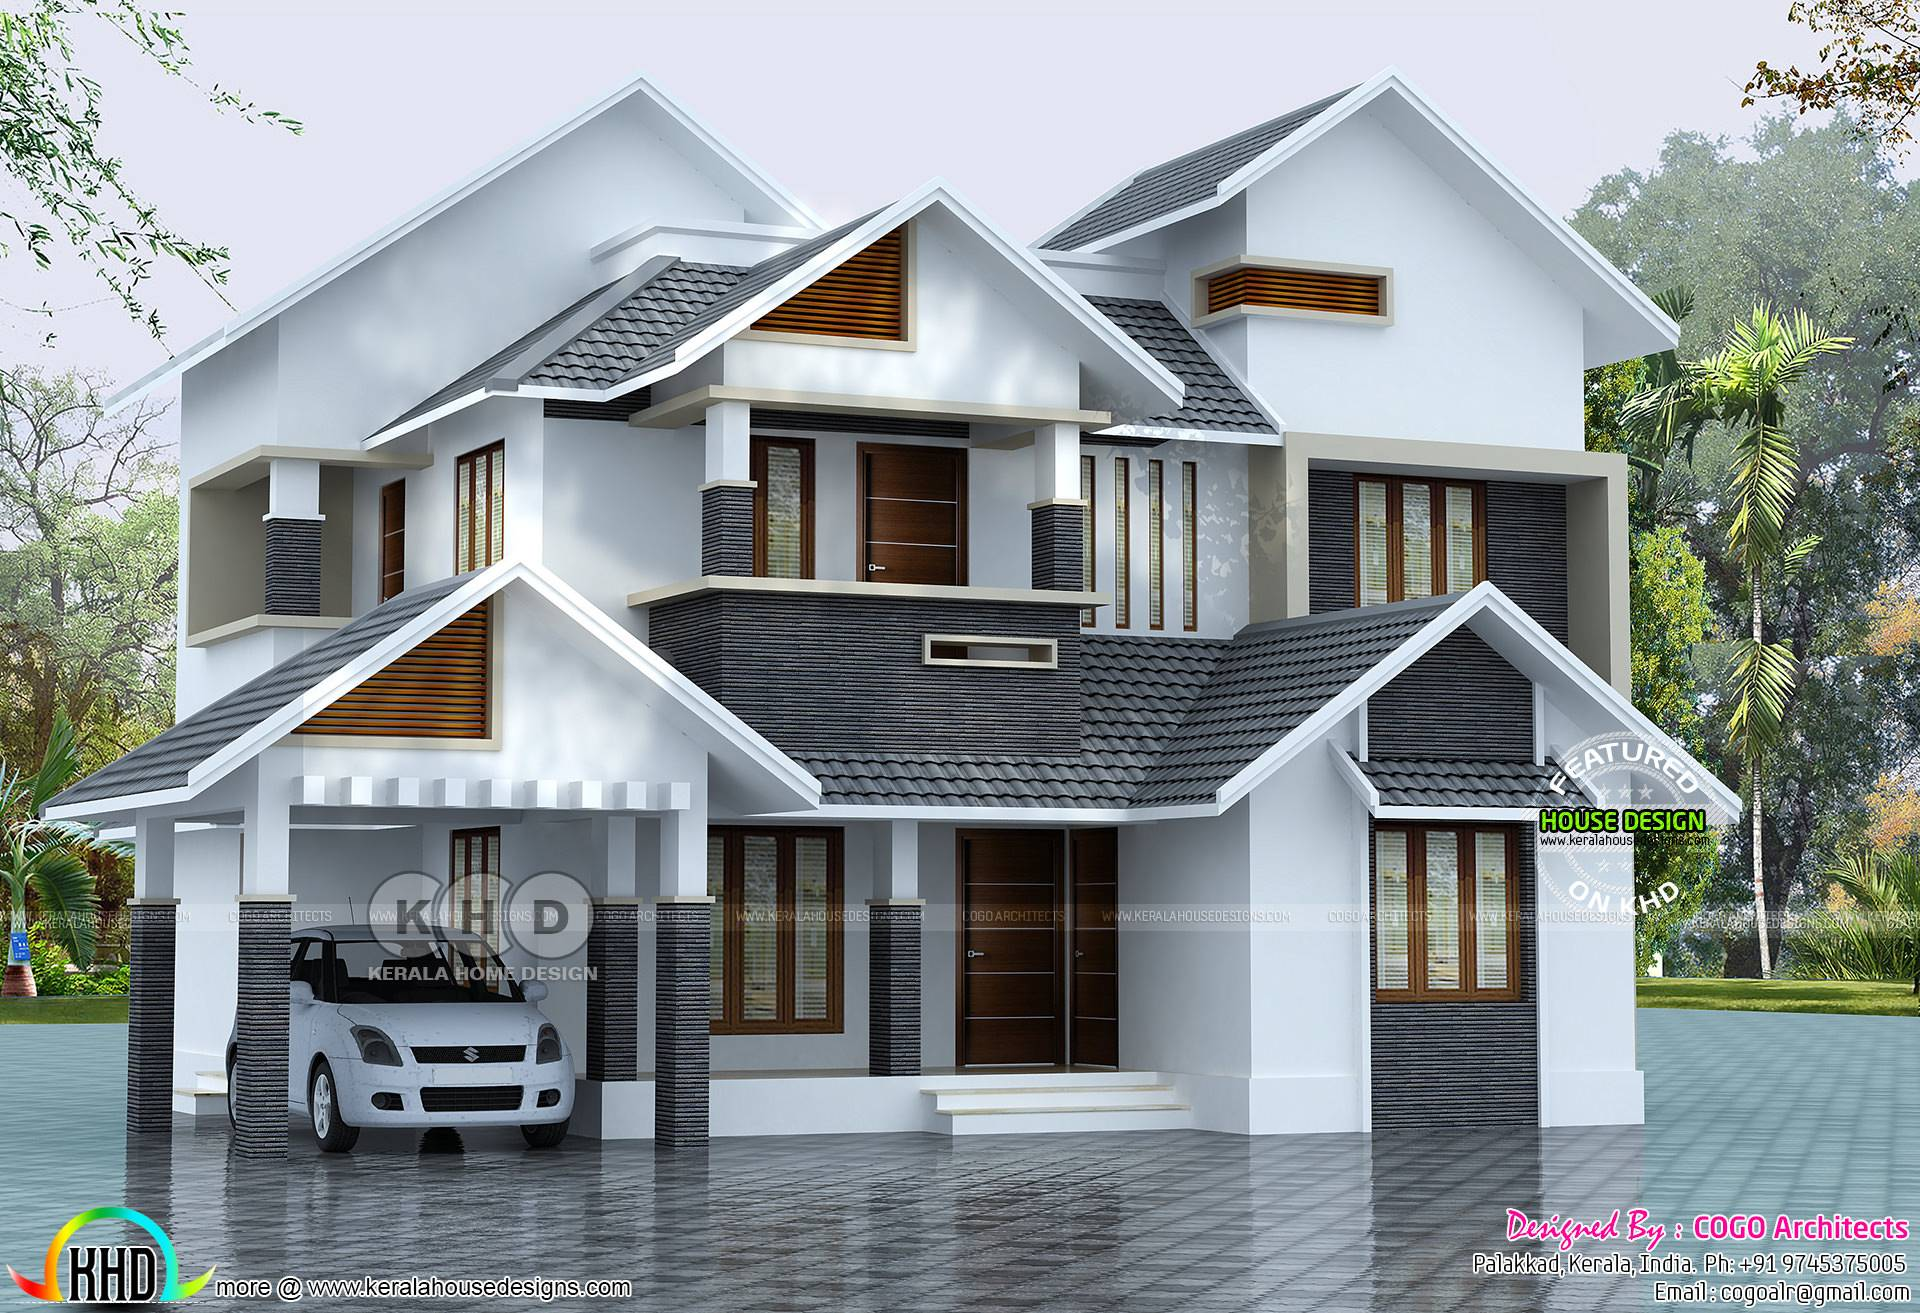 Sloped Roof House Plan Kerala Home Design Home Plans Blueprints 100701